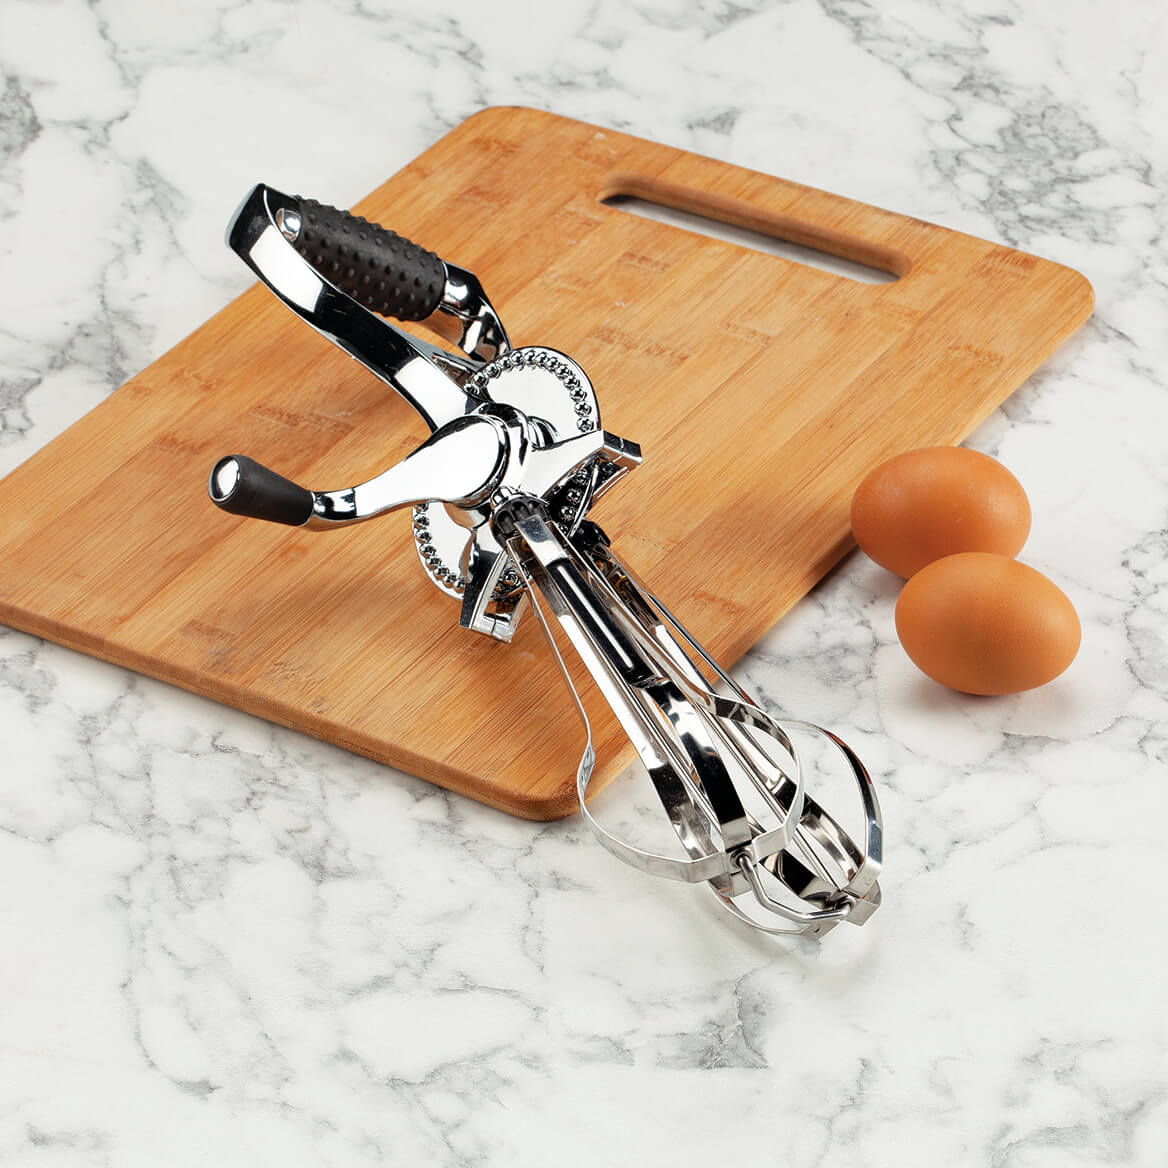 Hand Held Egg Beater by Home Marketplace-370746